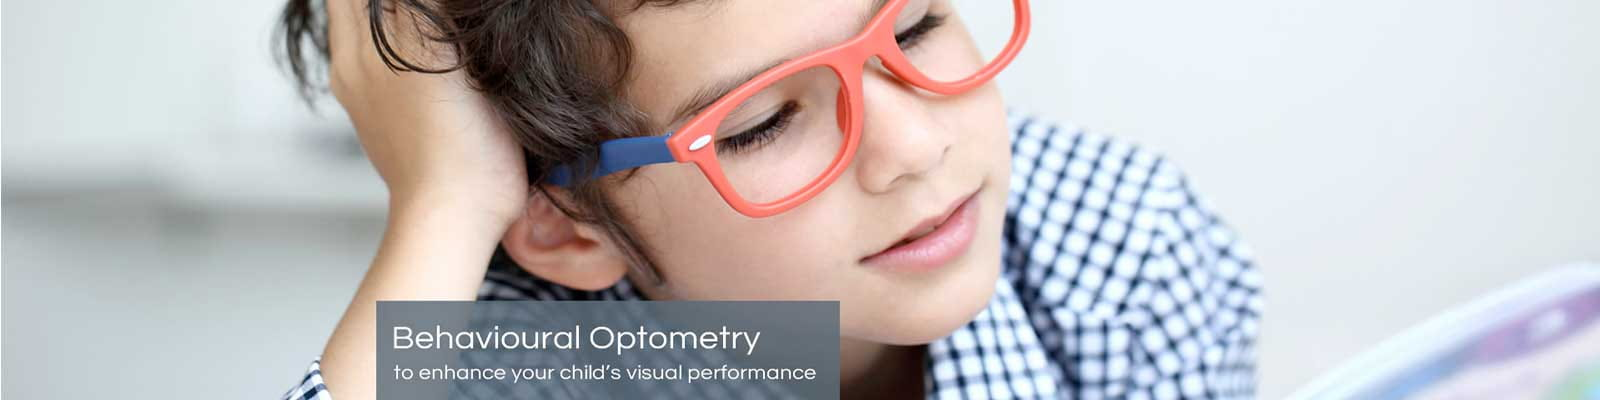 Behavioral Optometry